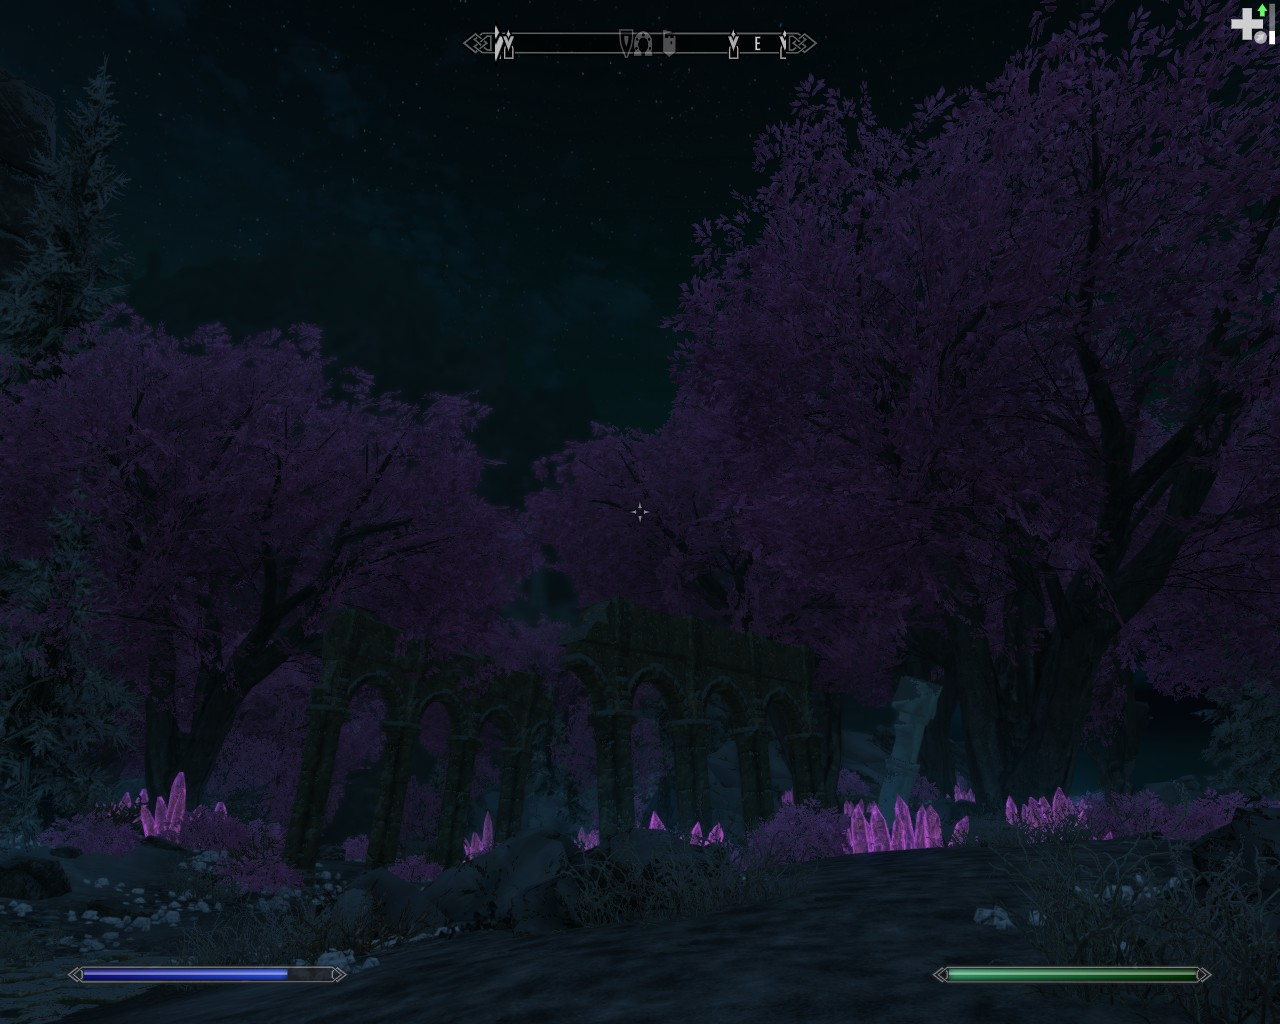 Kristallwald (The Crystal Forest)